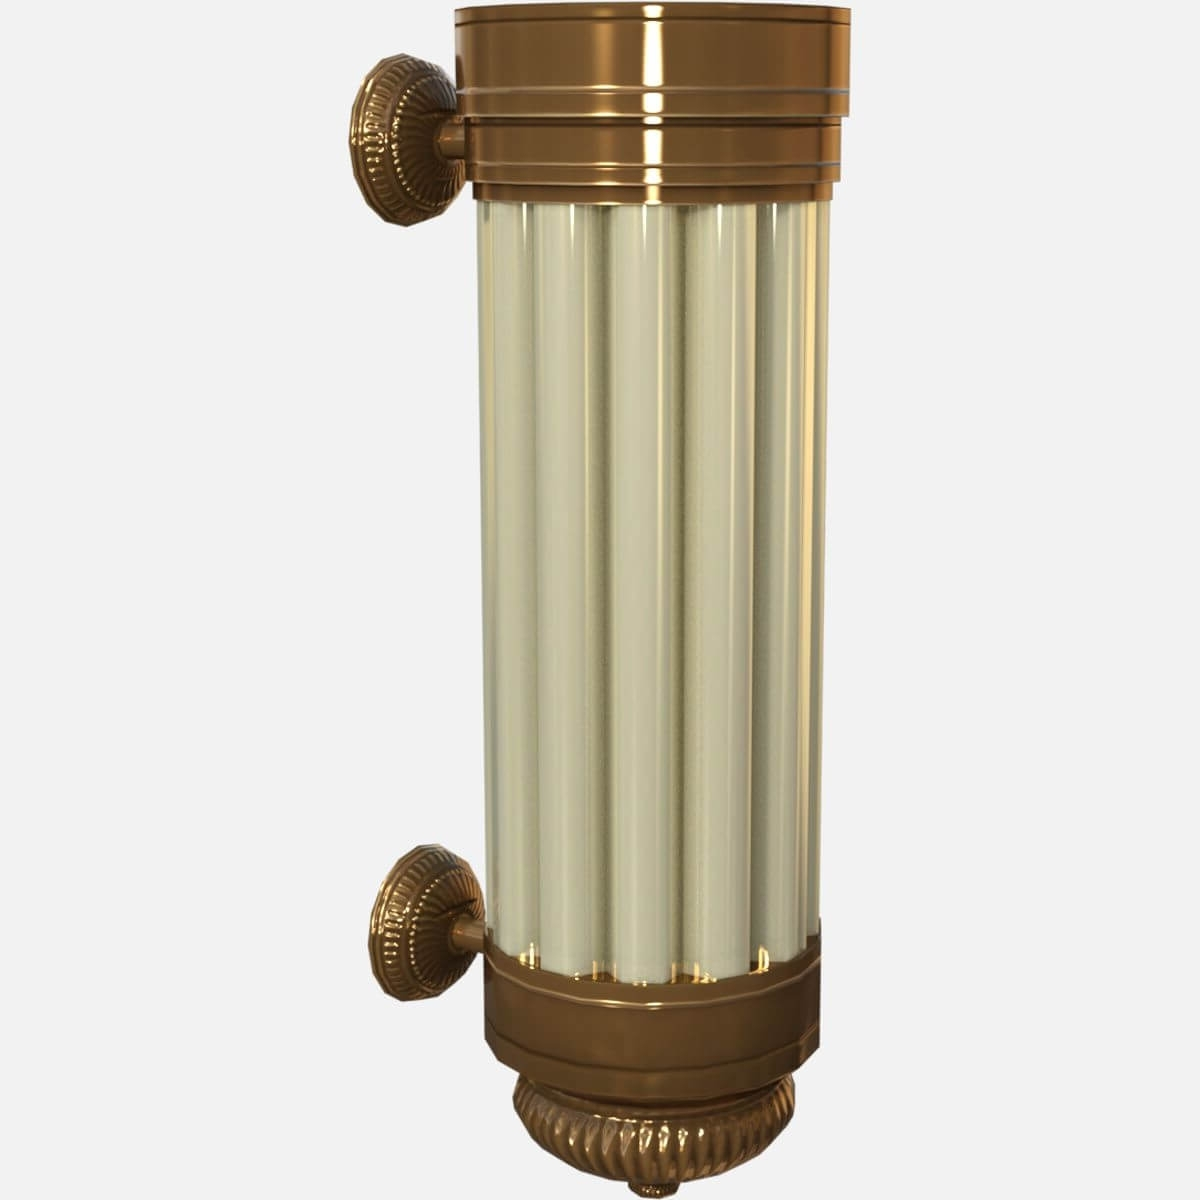 Most Current Art Deco Wall Sconces Inside Art Deco Wall Sconce Light 3d Model (View 9 of 20)